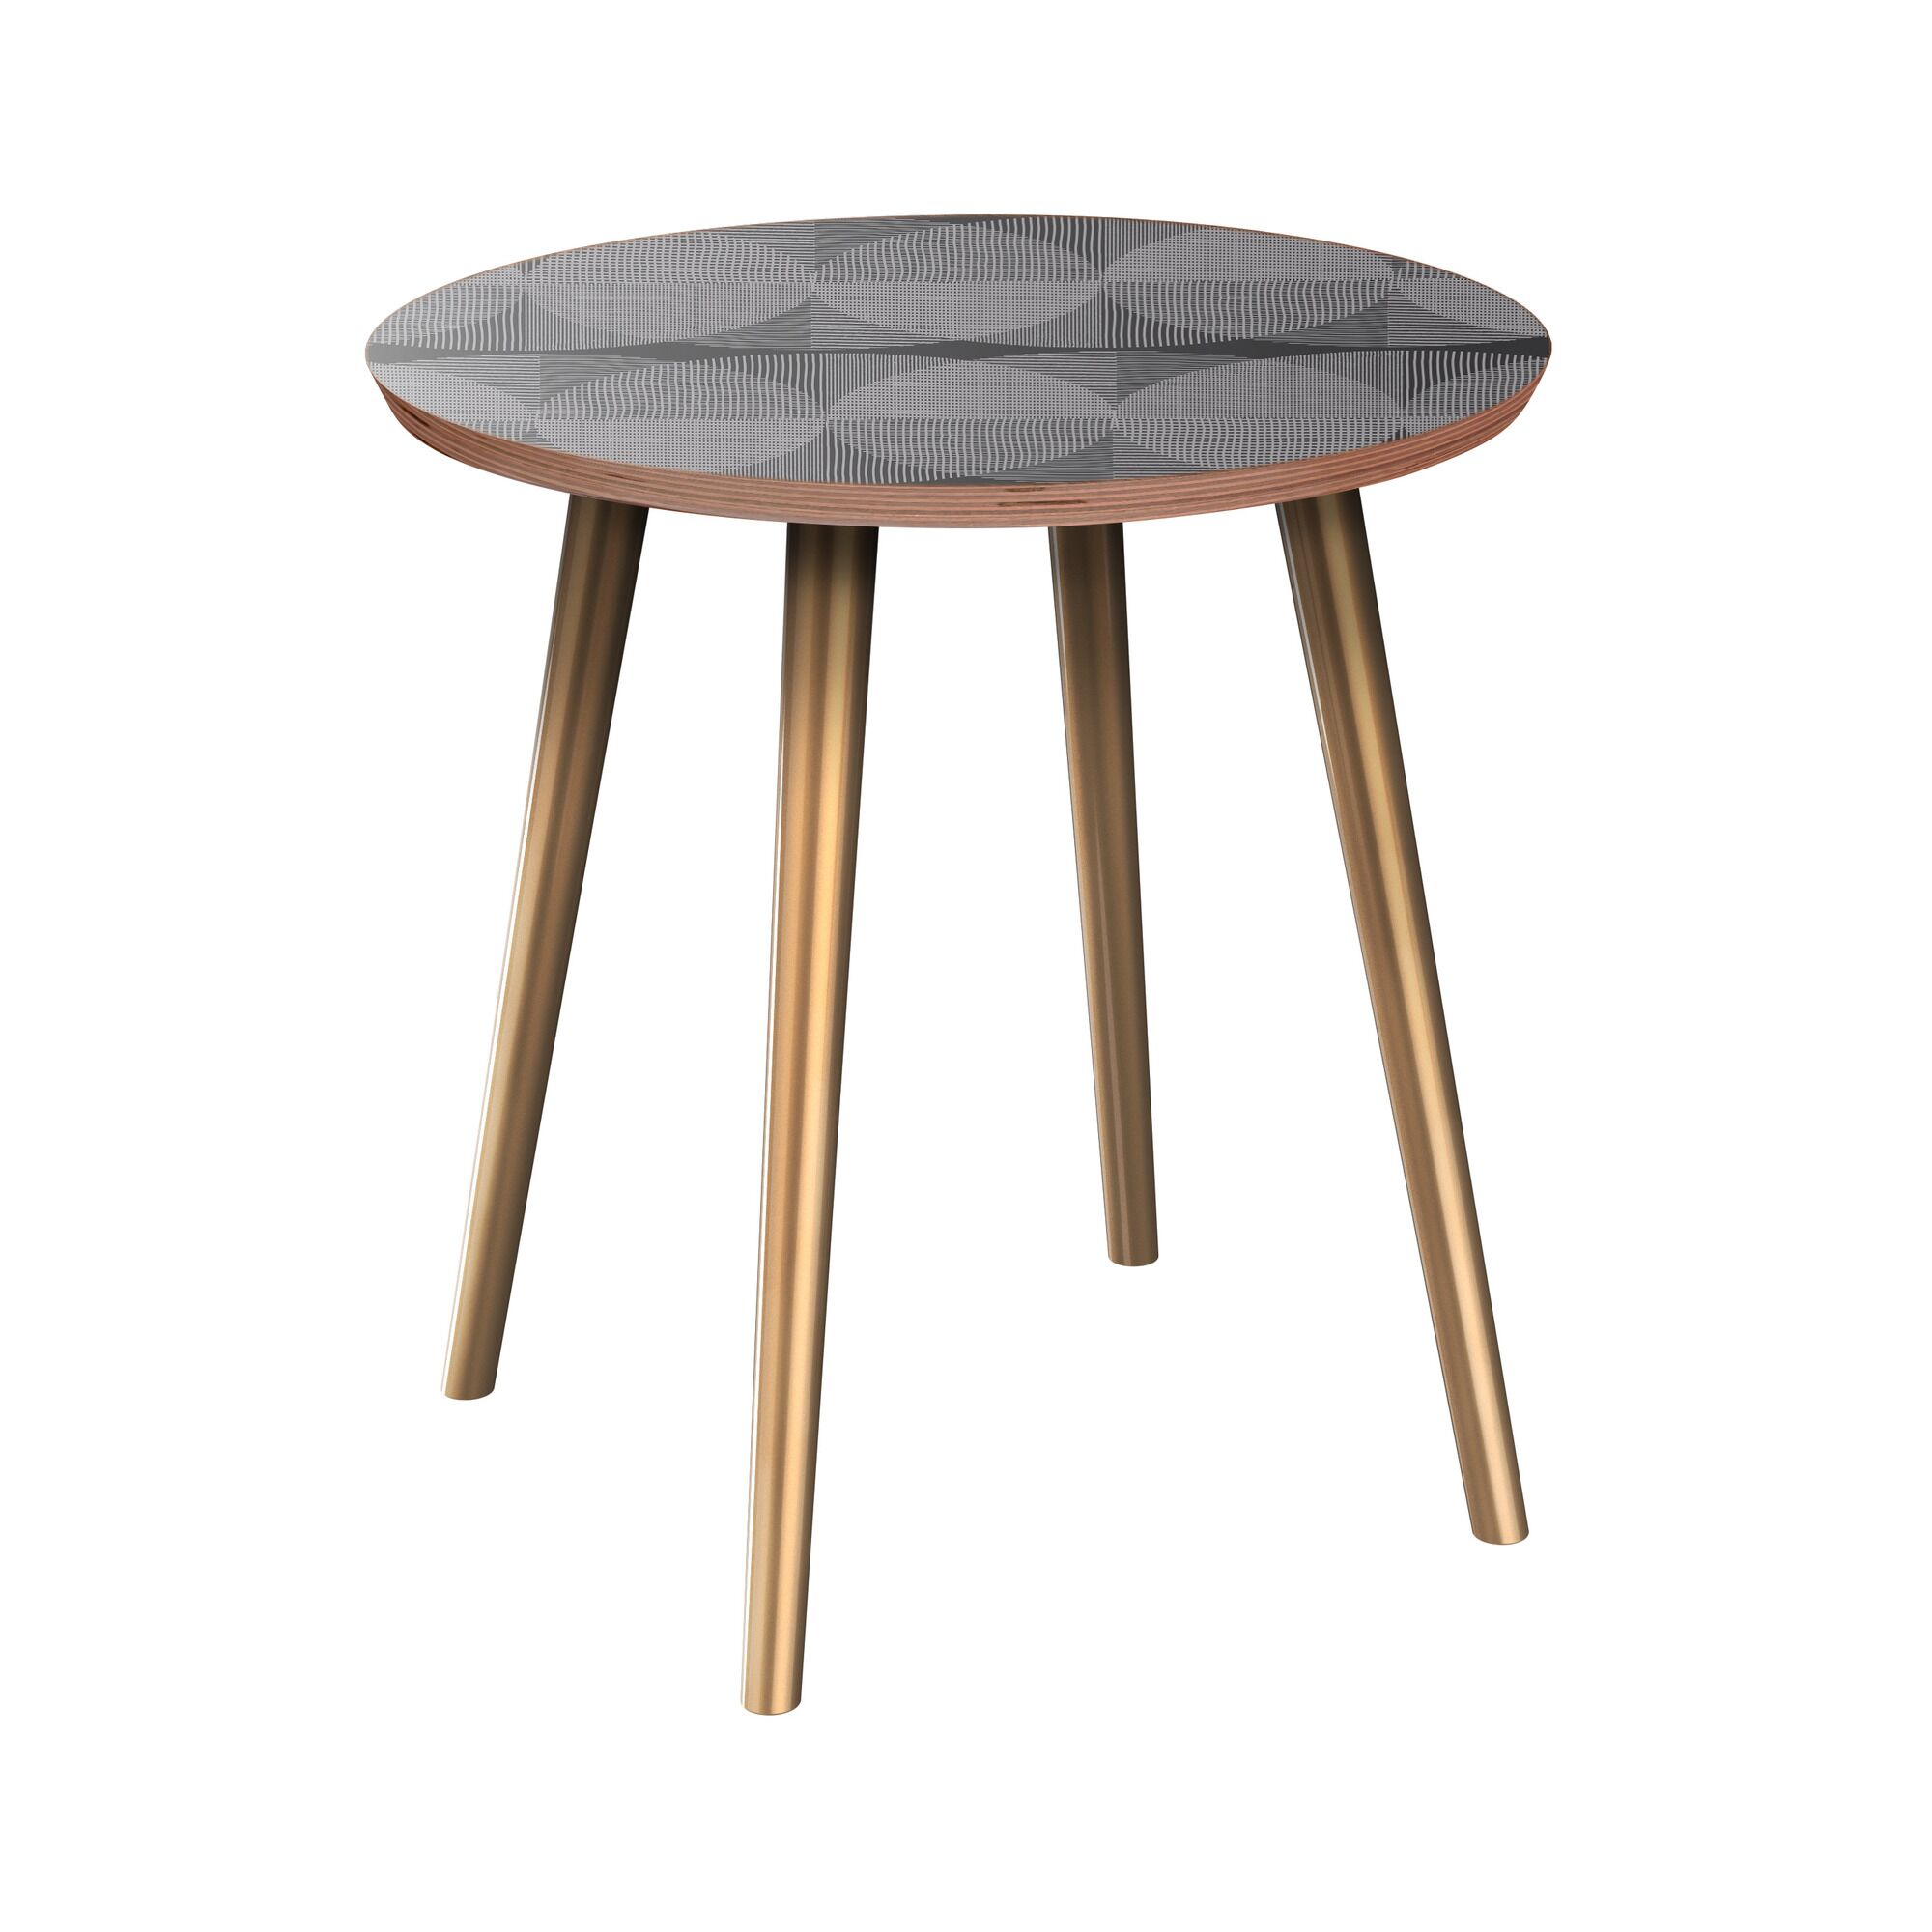 Eustice End Table Table Base Color: Brass, Table Top Color: Walnut